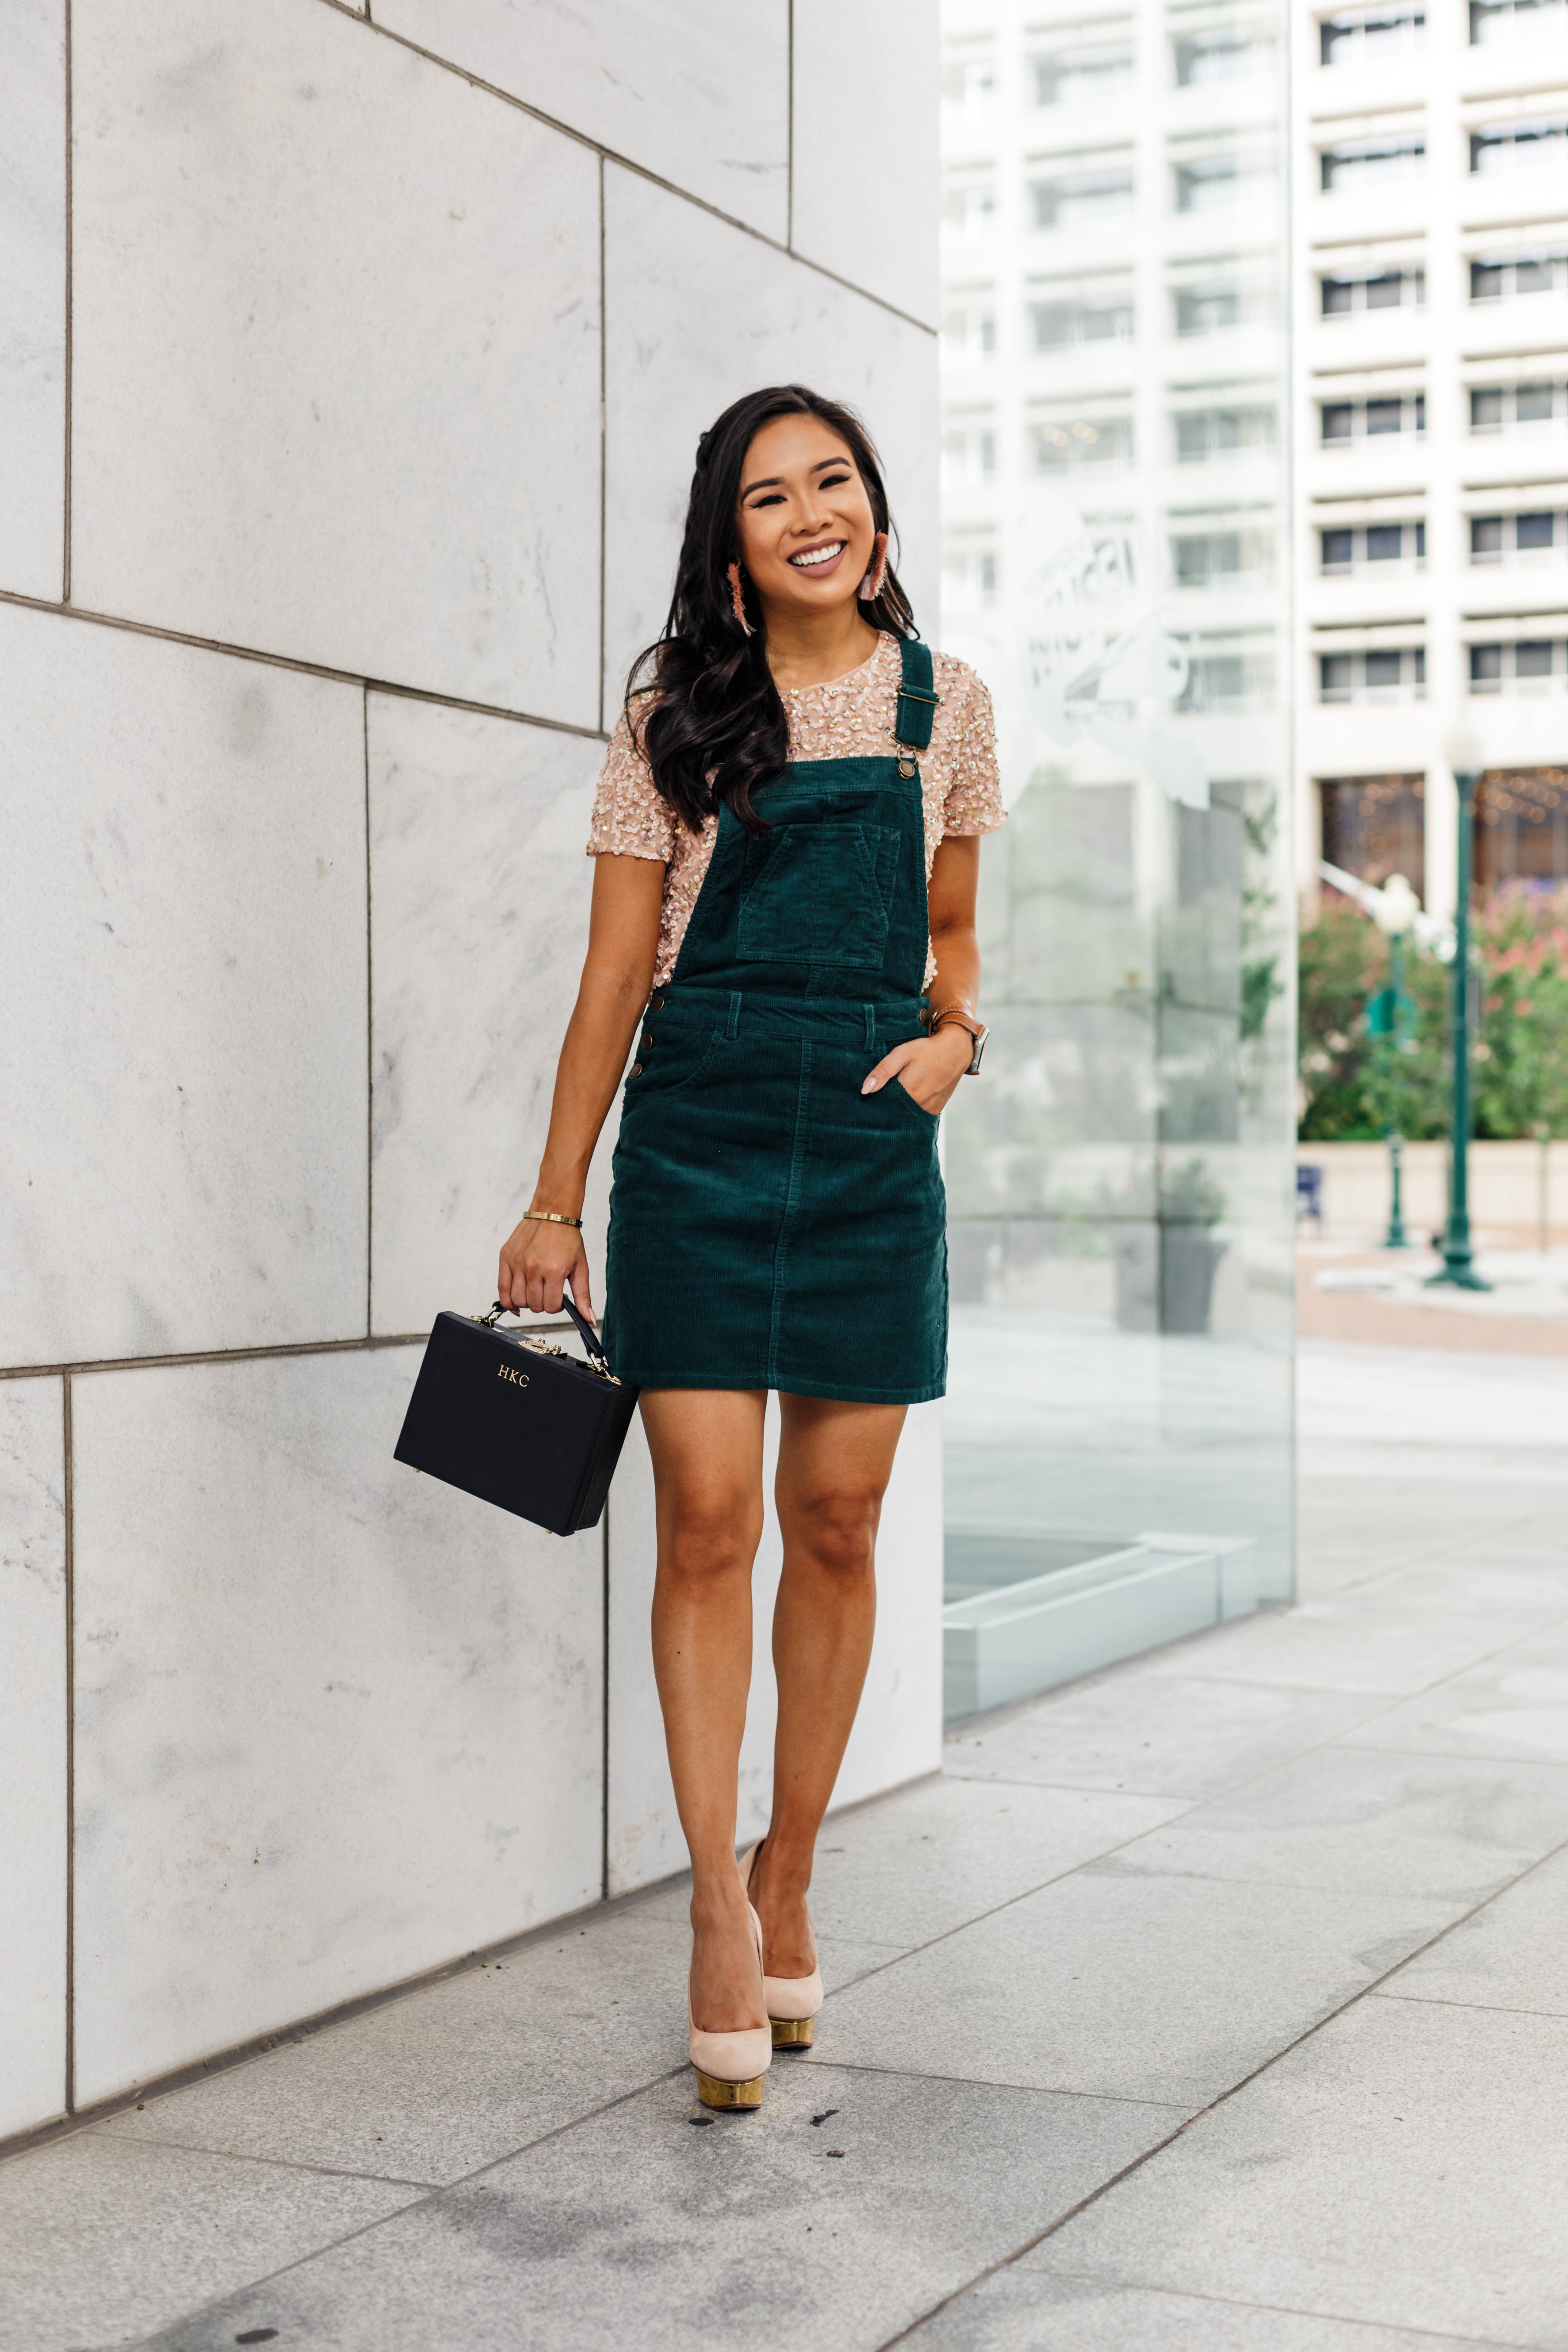 Styling A Corduroy Overall Dress For A Night Out Color Chic Corduroy Overall Dress Overall Dress Fall Dress Outfit [ 6547 x 4365 Pixel ]